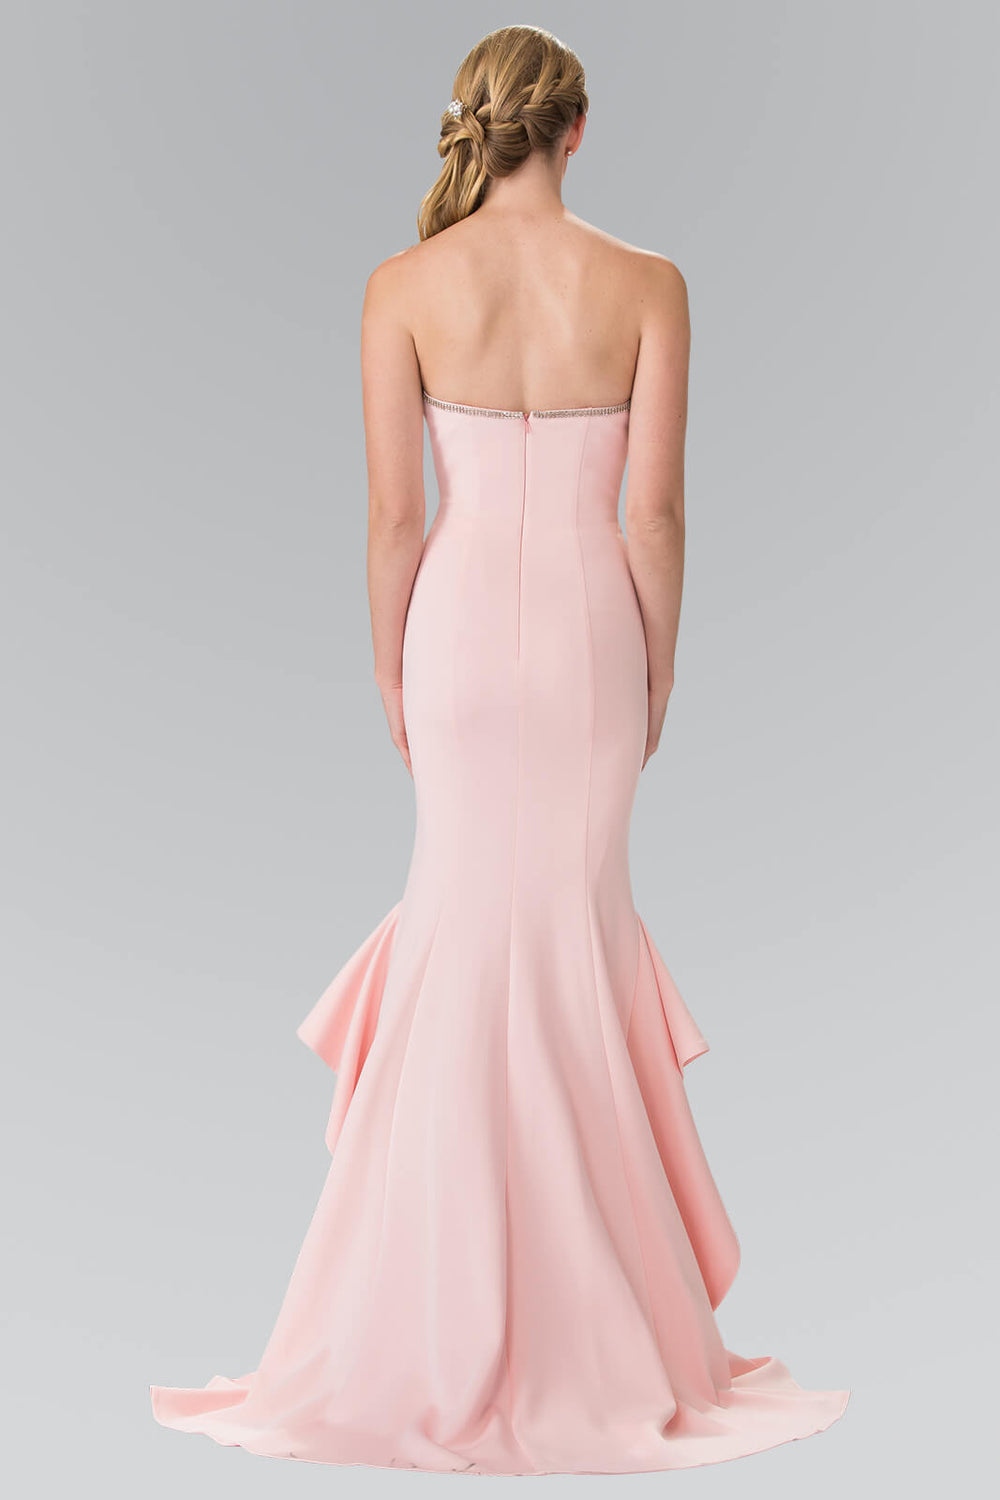 Strapless Long Prom Dress Formal Evening Gown - The Dress Outlet